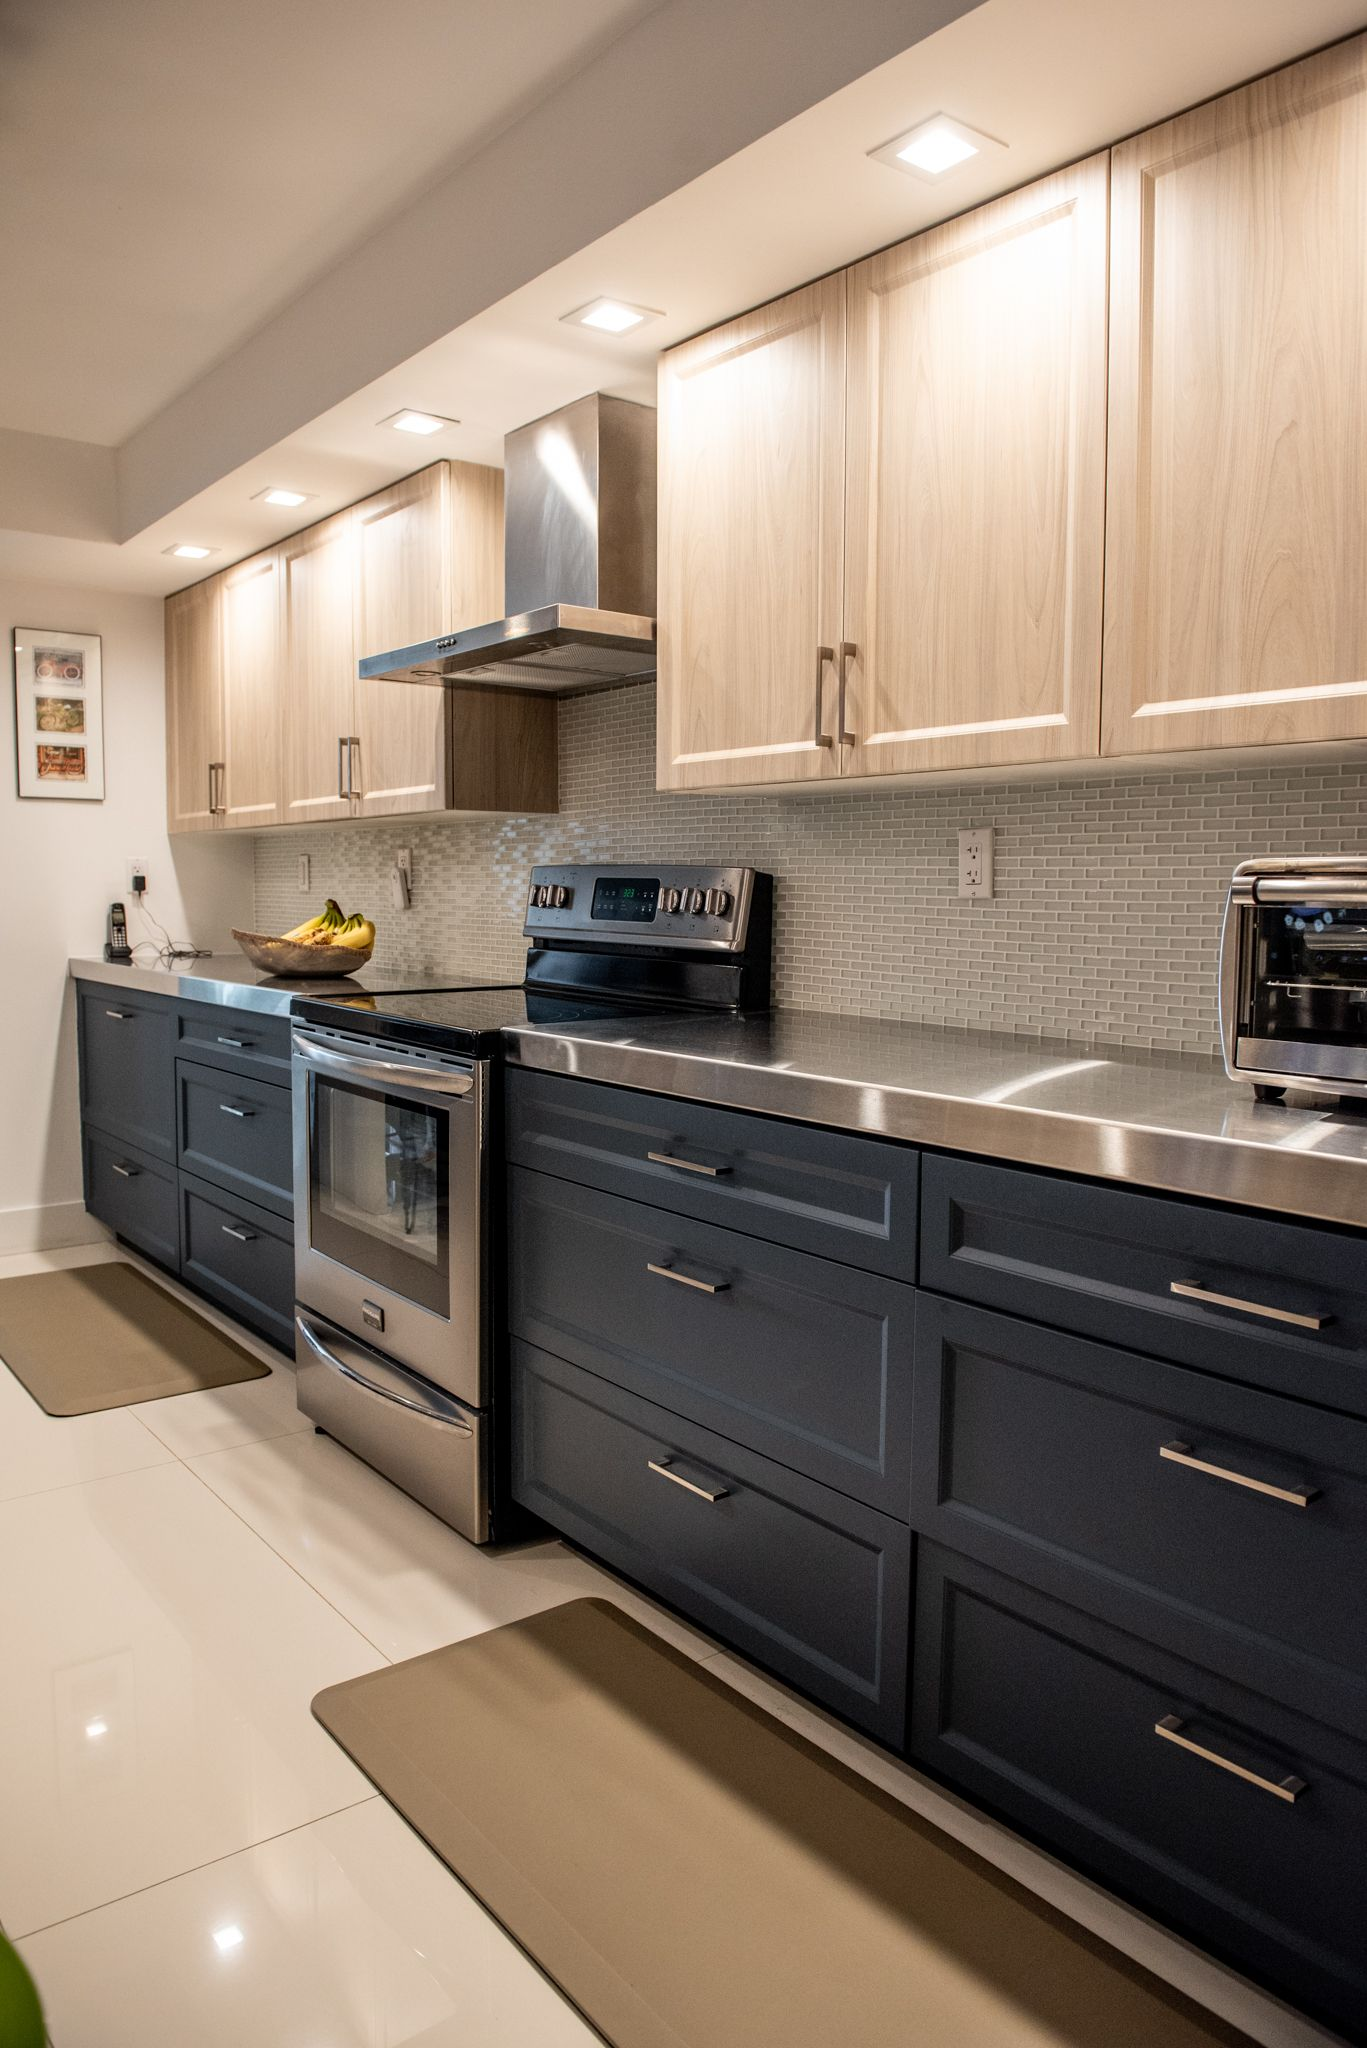 Contemporary Kitchen Remodel Done With Cabinet Refacing In A Two Tone Color In 2020 Contemporary Kitchen Remodel Contemporary Kitchen Kitchen Remodel